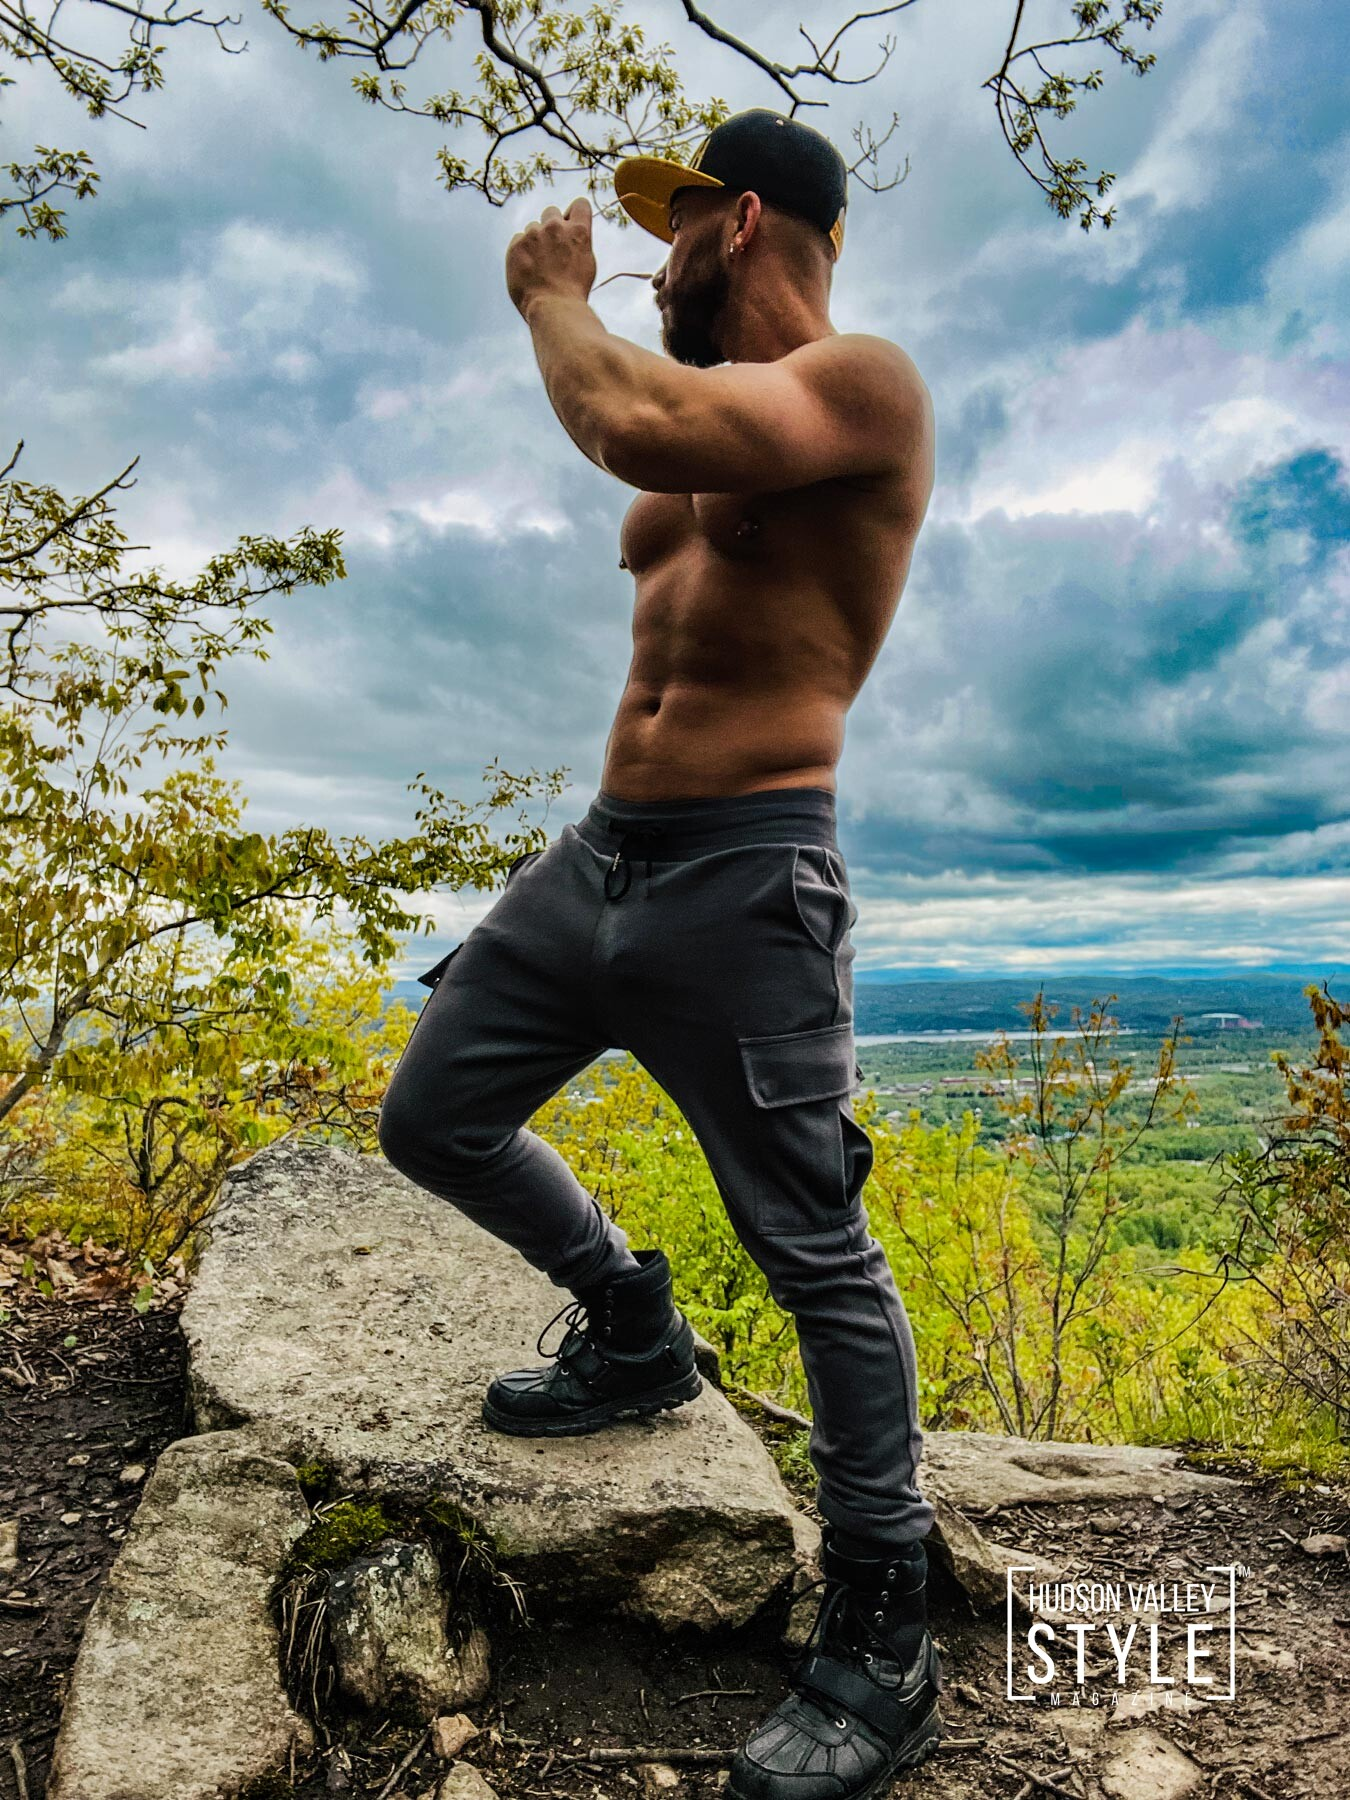 Why Hiking in the Hudson Valley is a Good Recreational Activity